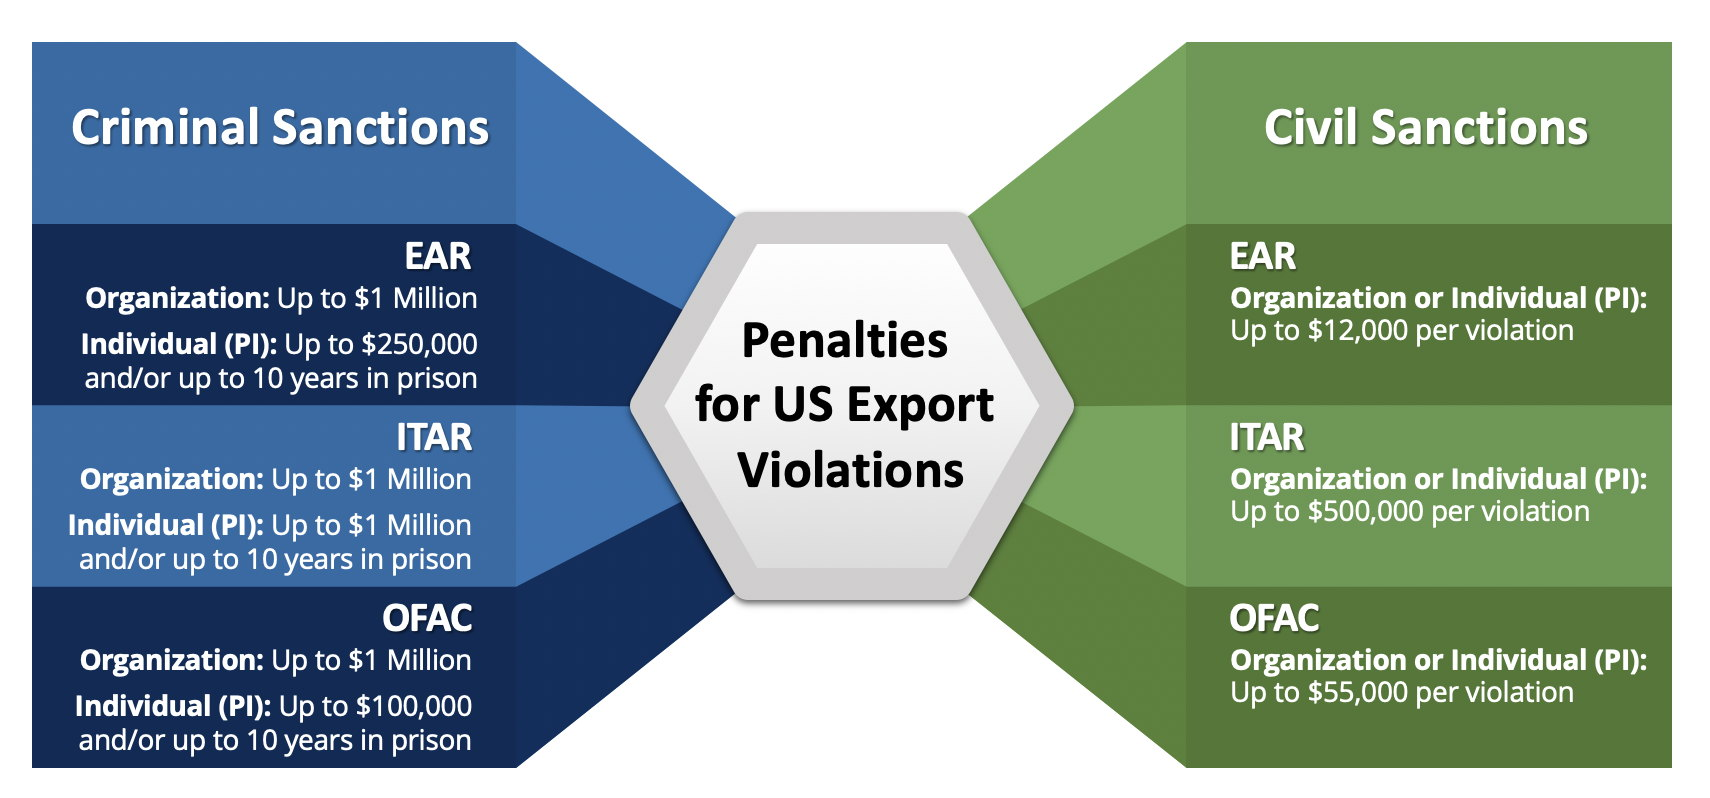 Penalties for US Export Violations